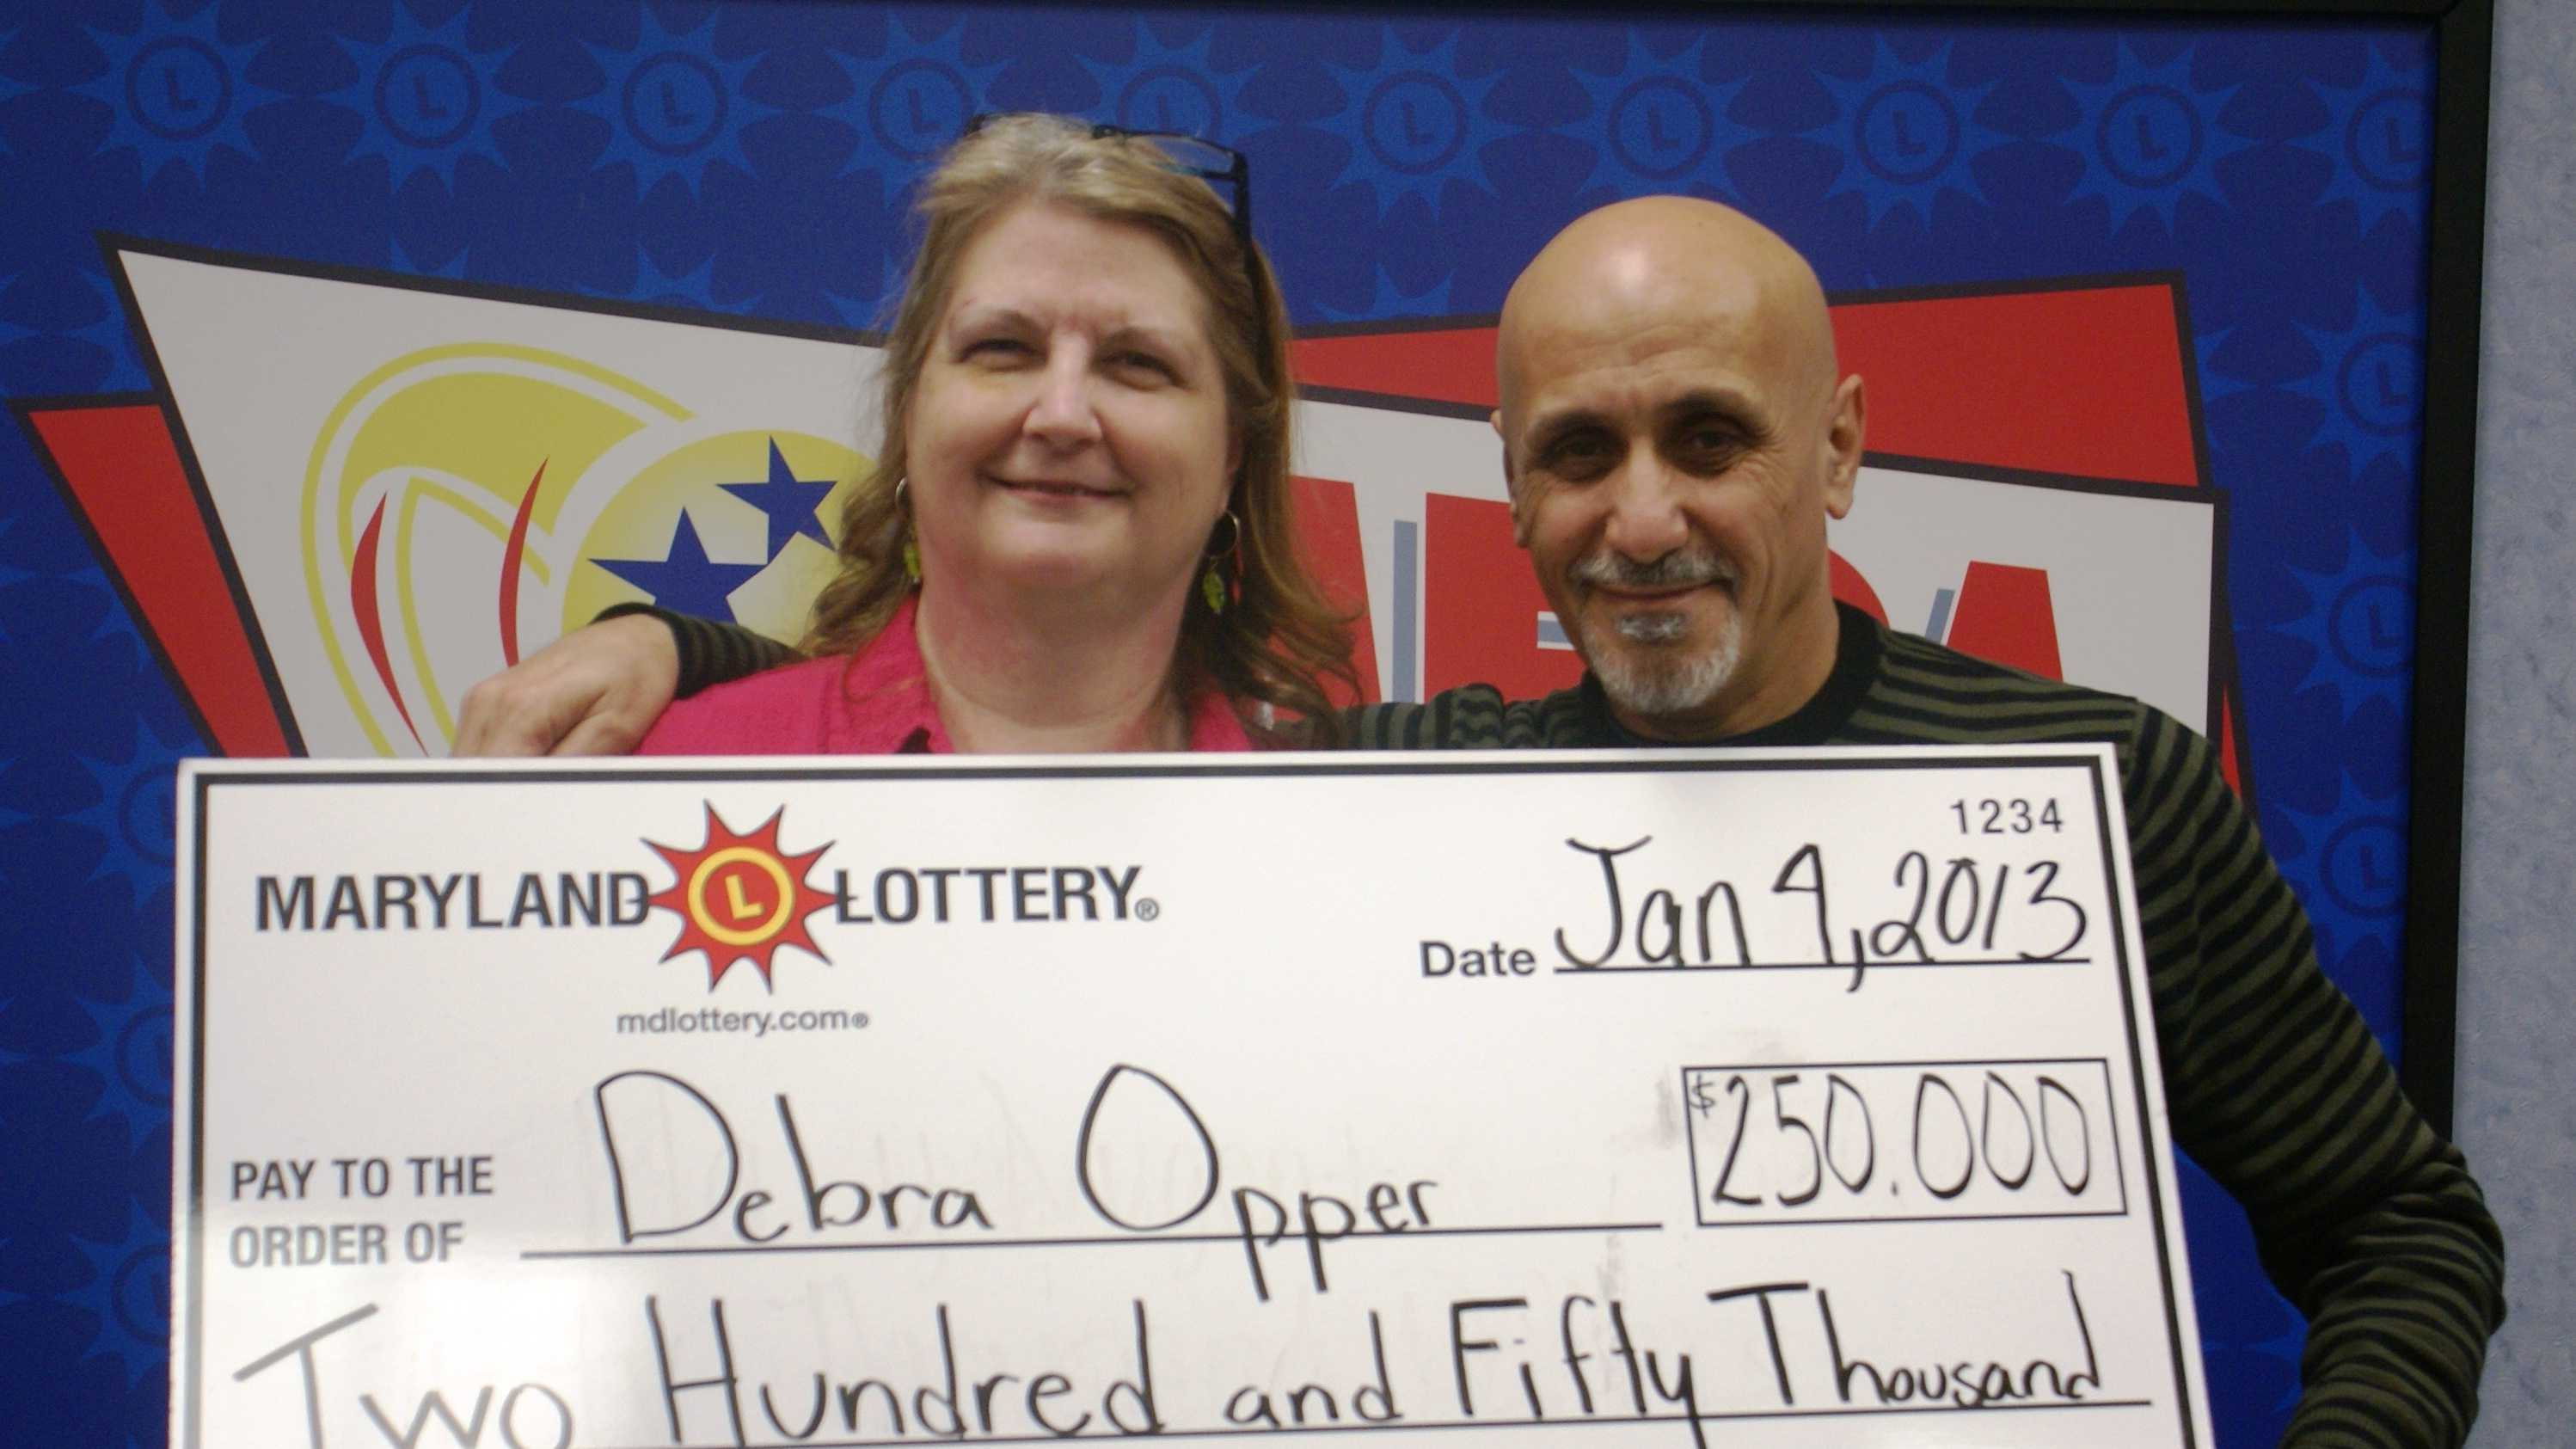 An Owings Mills woman is $250,000 richer, Maryland Lottery officials said Friday.